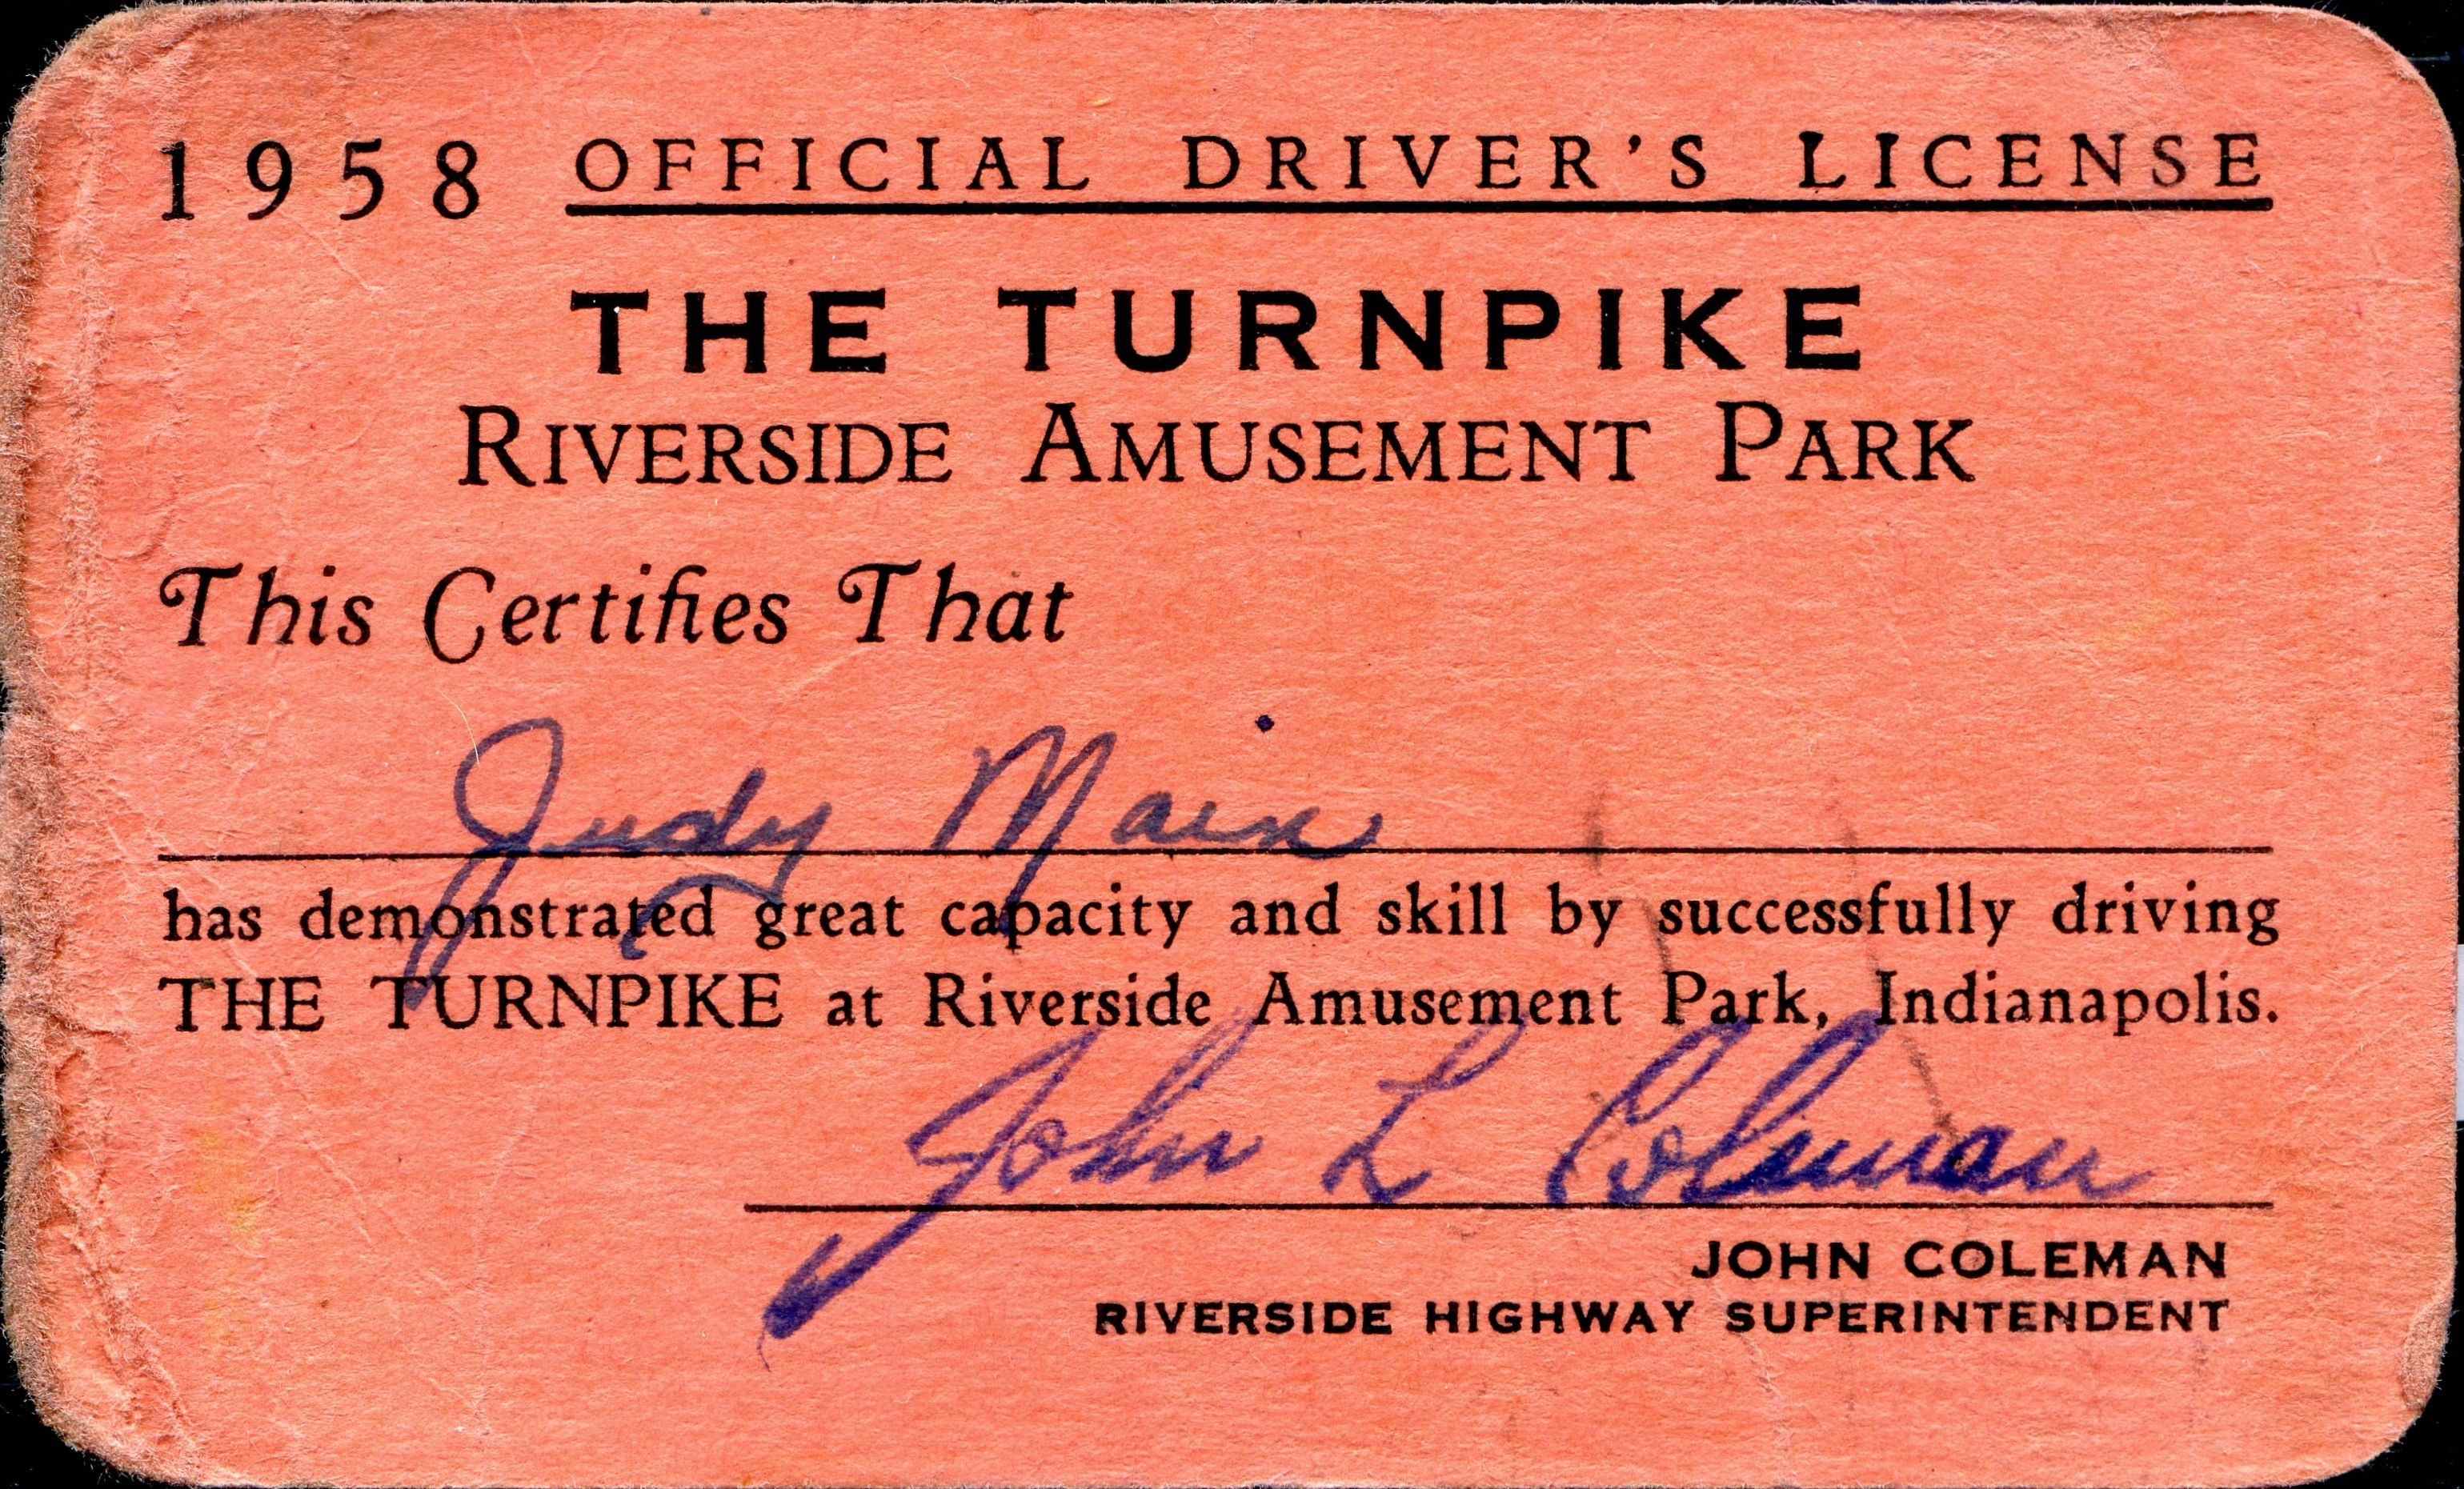 1958 Driver S License From The Turnpike Ride At Riverside Amusement Park In Indianapolis Amusement Park Indianapolis Riverside Park